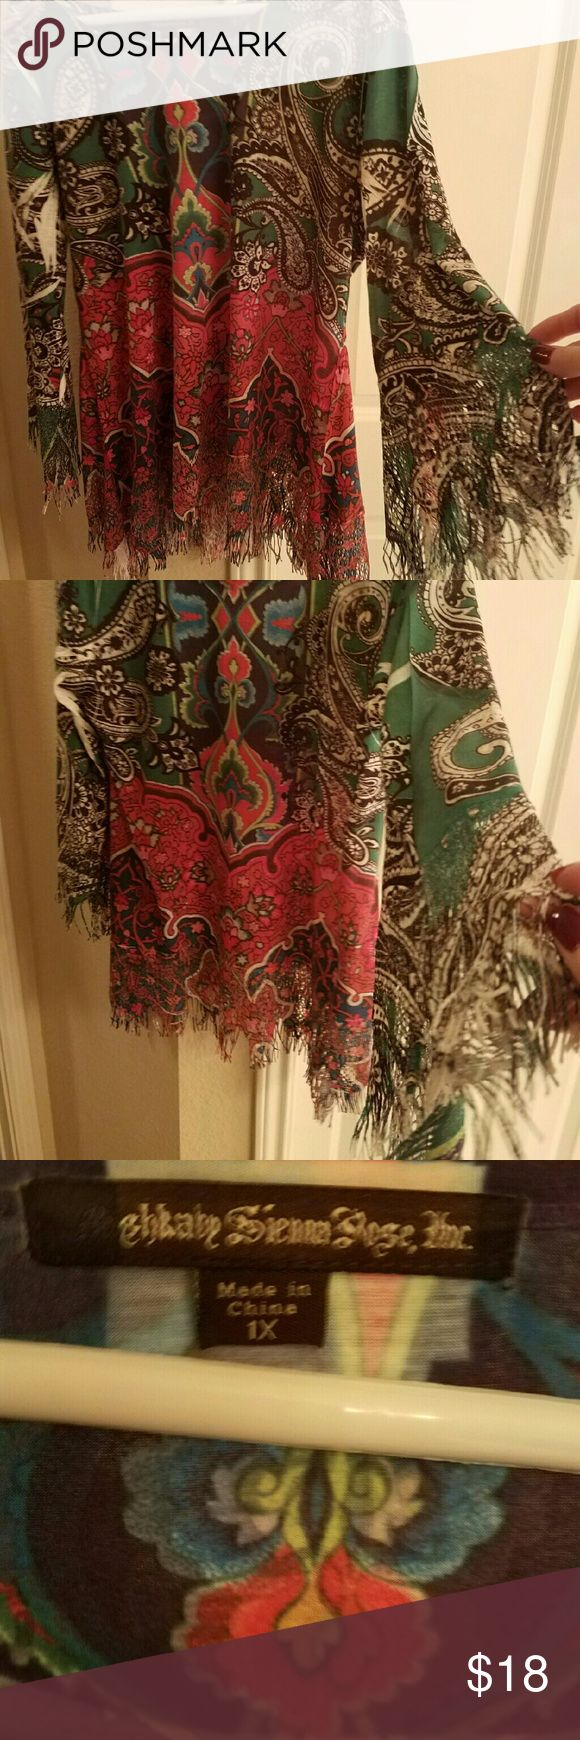 Paisley fringed blouse From Steinmart's boutique area...this is a gorgeous blouse. Accompained by bell sleeves and fringe.Worn once. Looks great with Jeggings and cowgirl boots. Tops Blouses